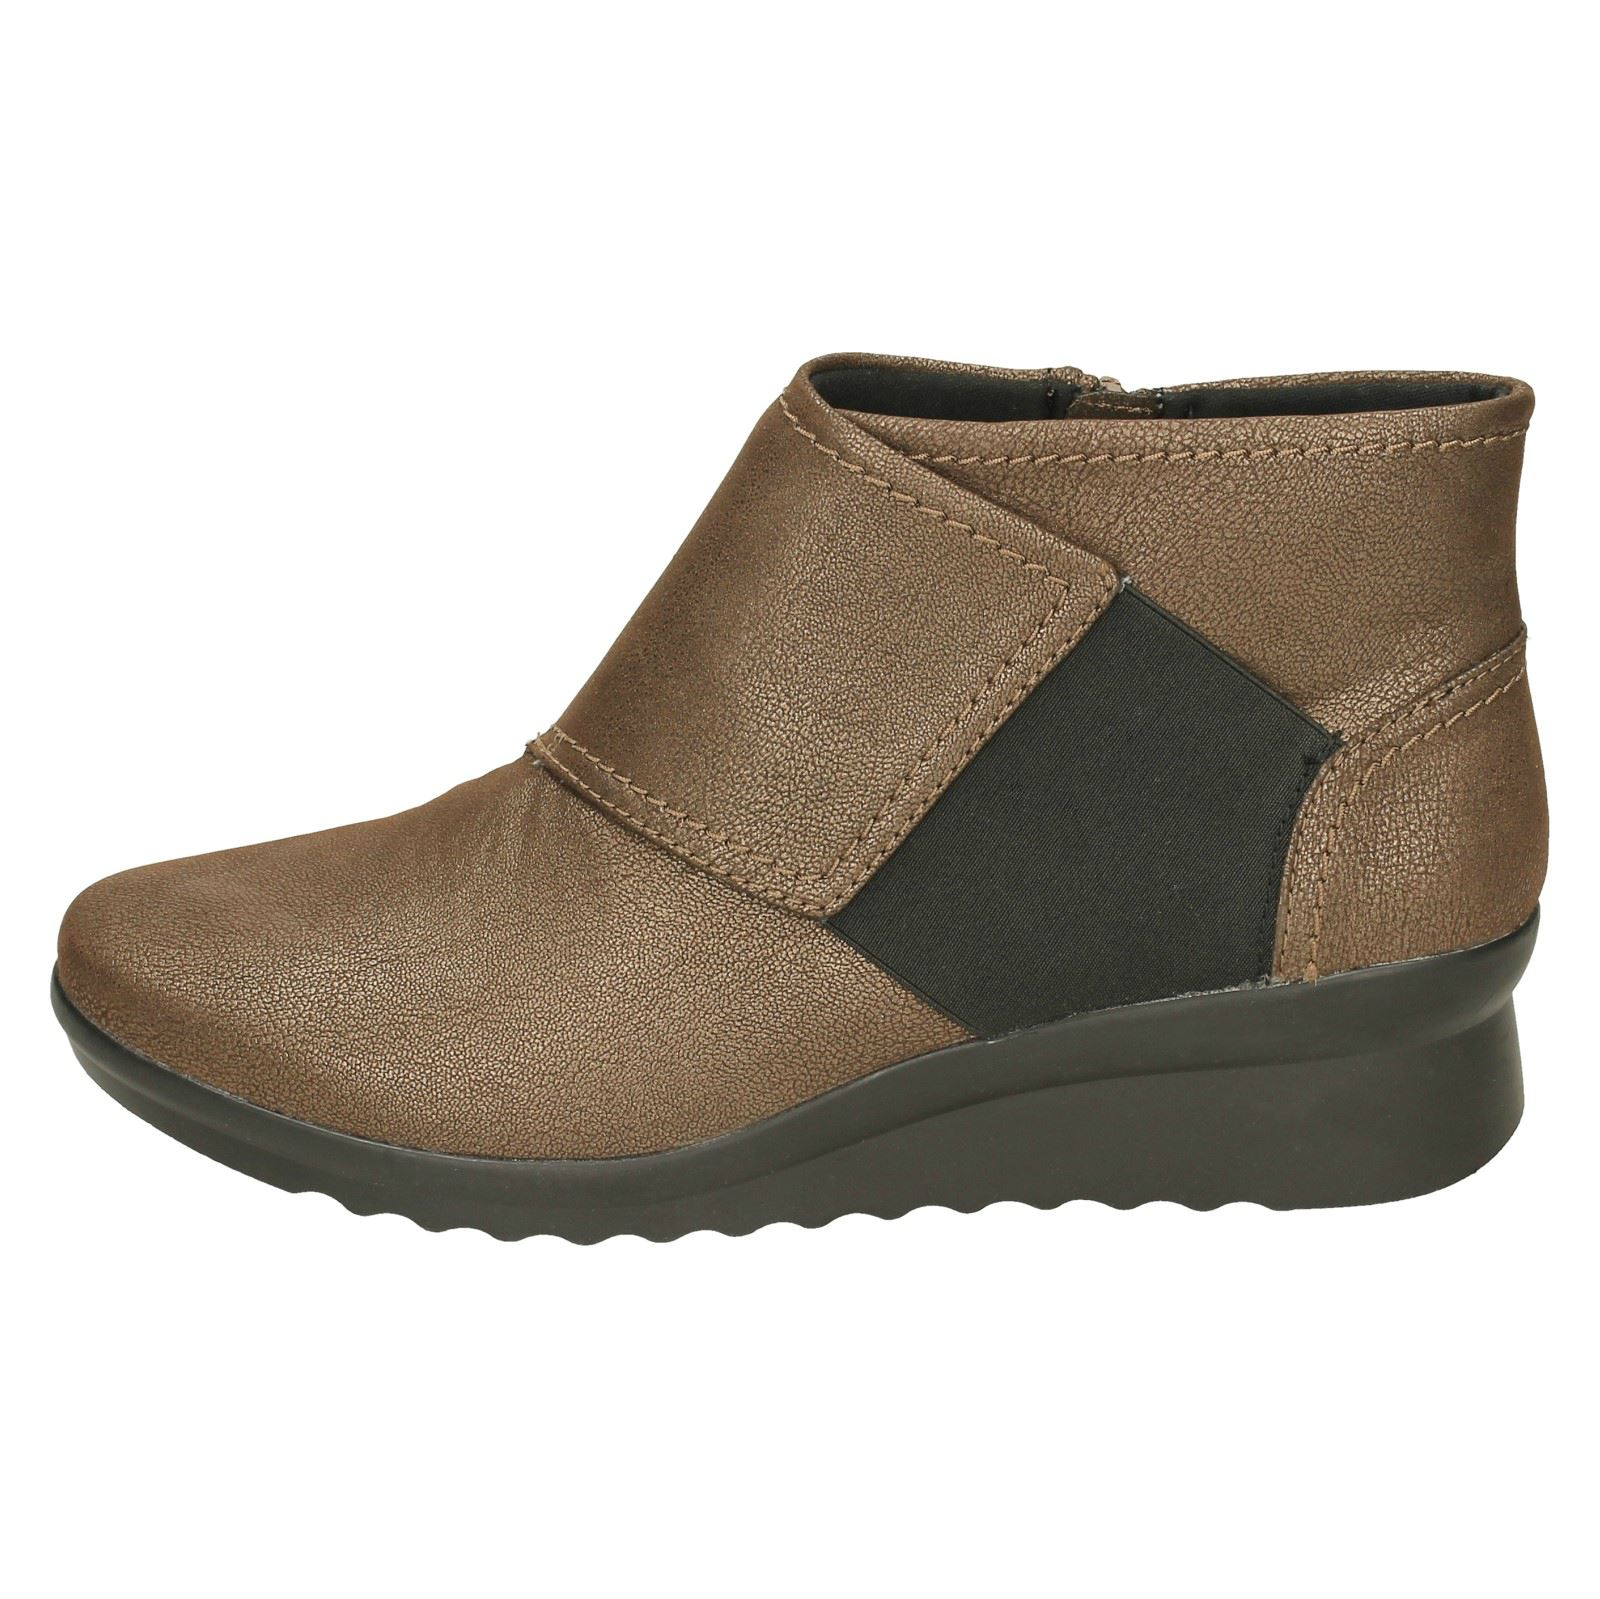 ef0f7a885e7 Ladies Clarks Caddell Rush Ankle Boots